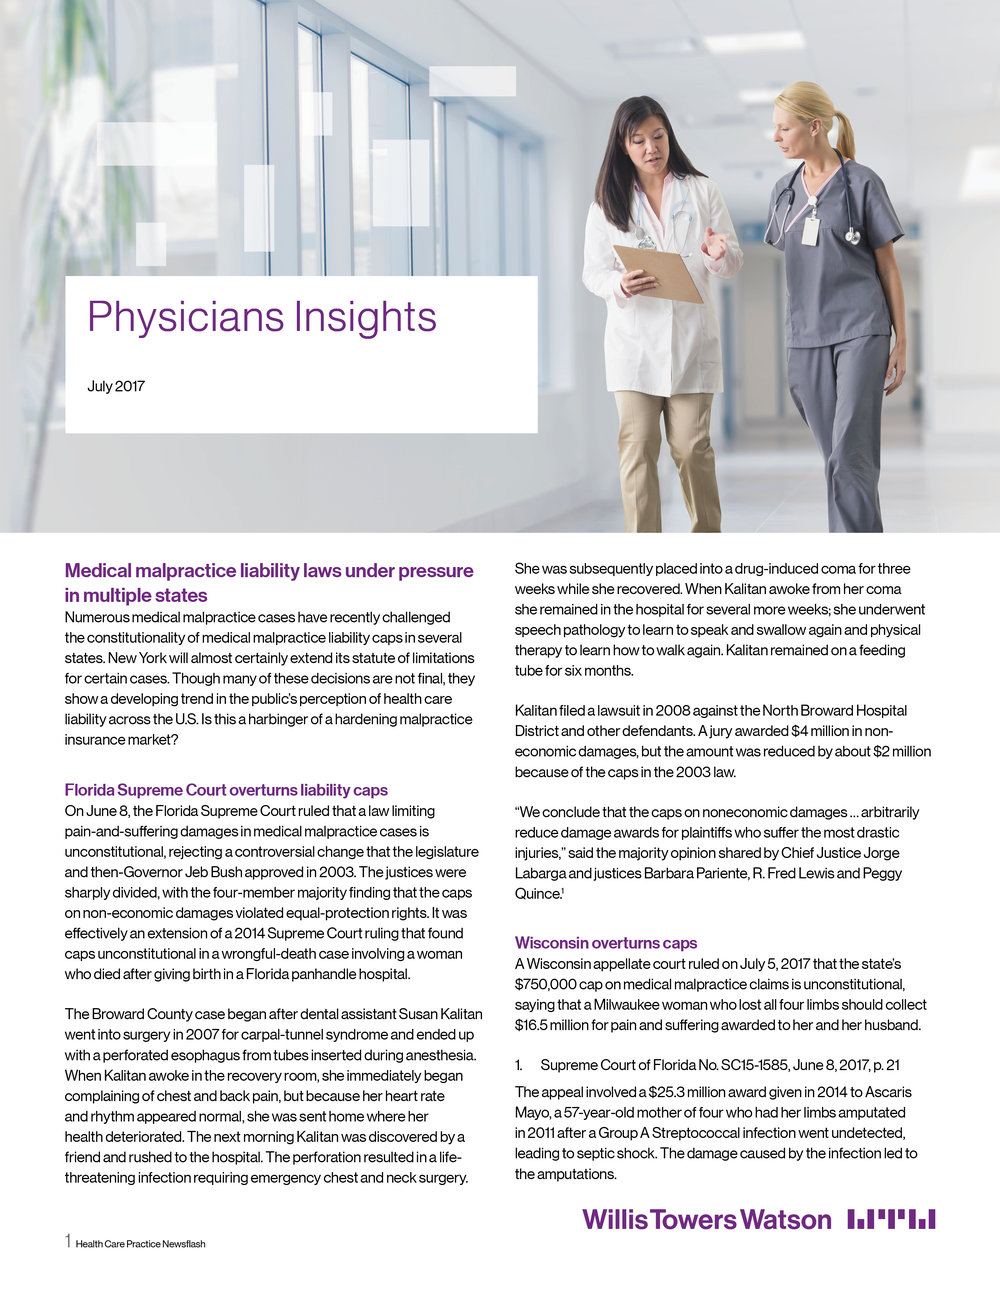 17310 NEWSLETTER_PhysiciansInsights July17.jpg